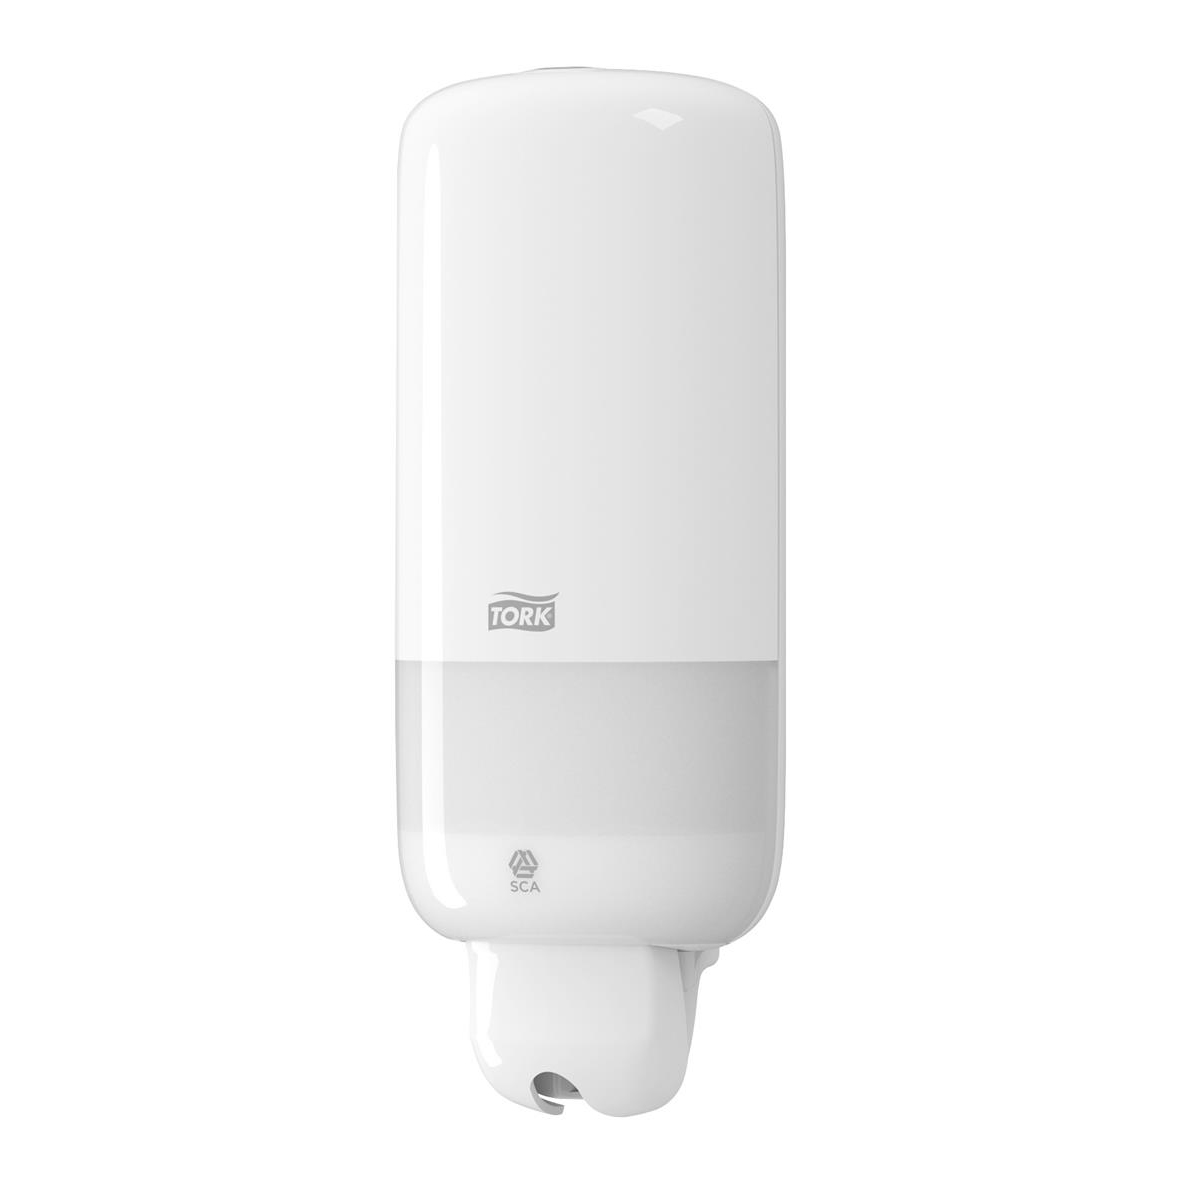 Tork Foam Soap Dispenser for 1000ml refills Casing White Ref 561500